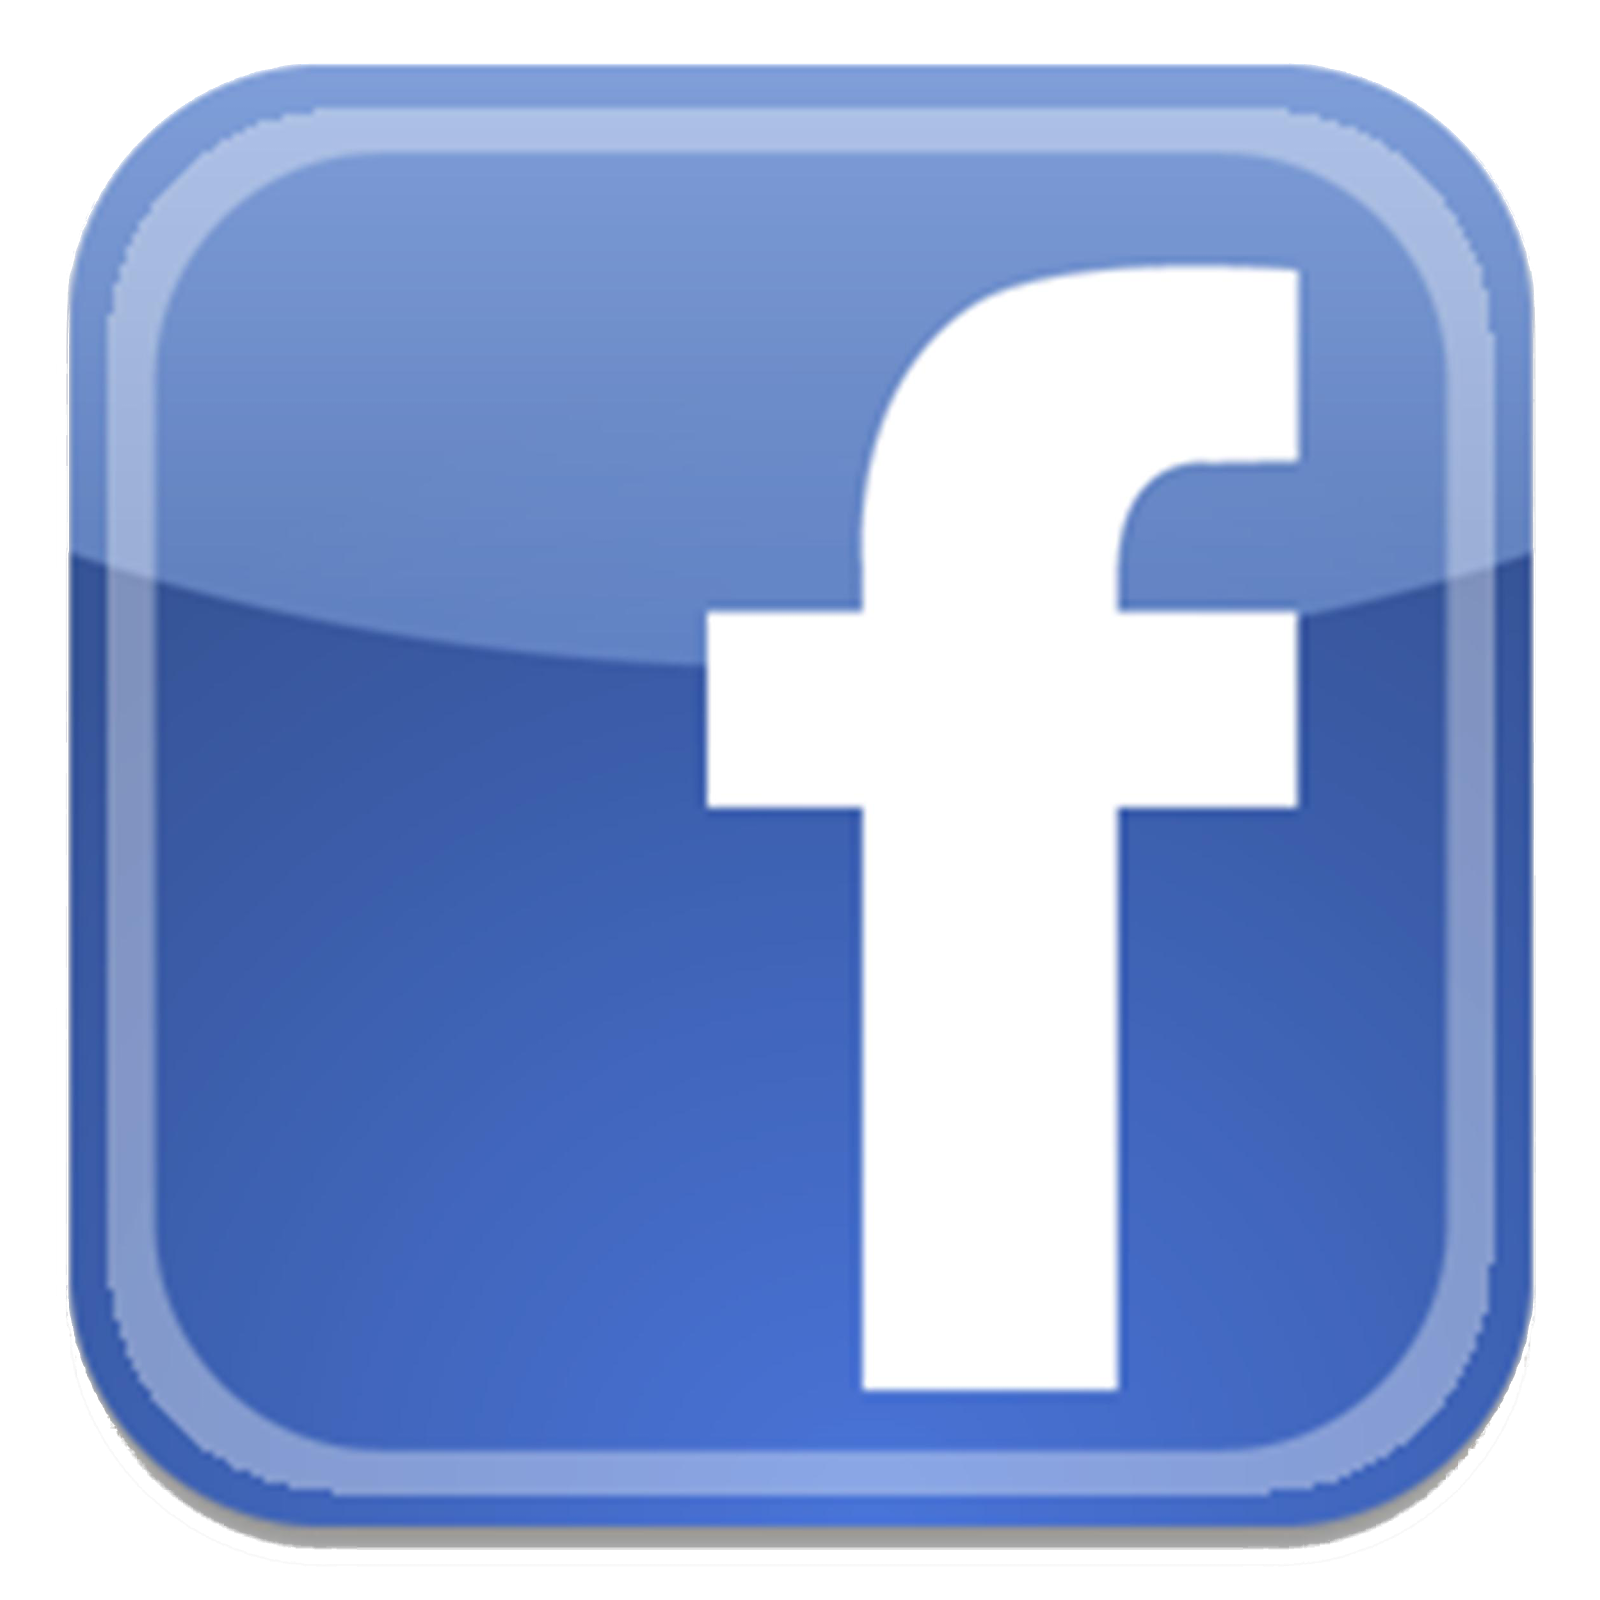 Impending education alliance facebooklogopngimpending. Facebook logo 2016 png picture royalty free library